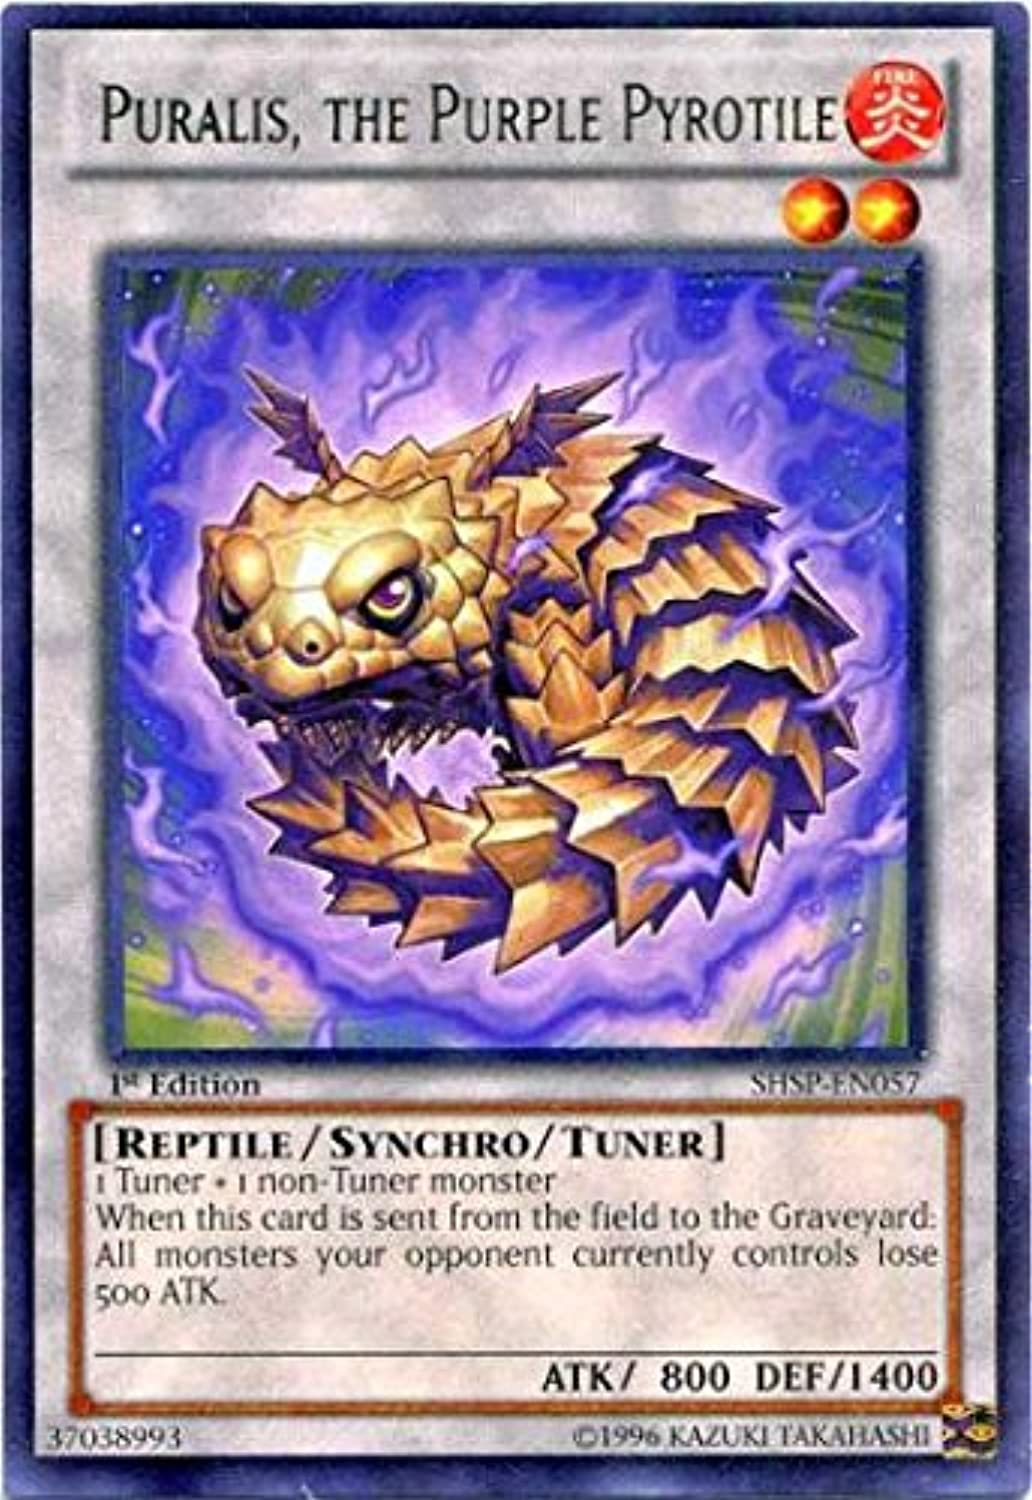 YuGiOh   Puralis, the Purple Pyredile (SHSPEN057)  Shadow Specters  Unlimited Edition  Rare